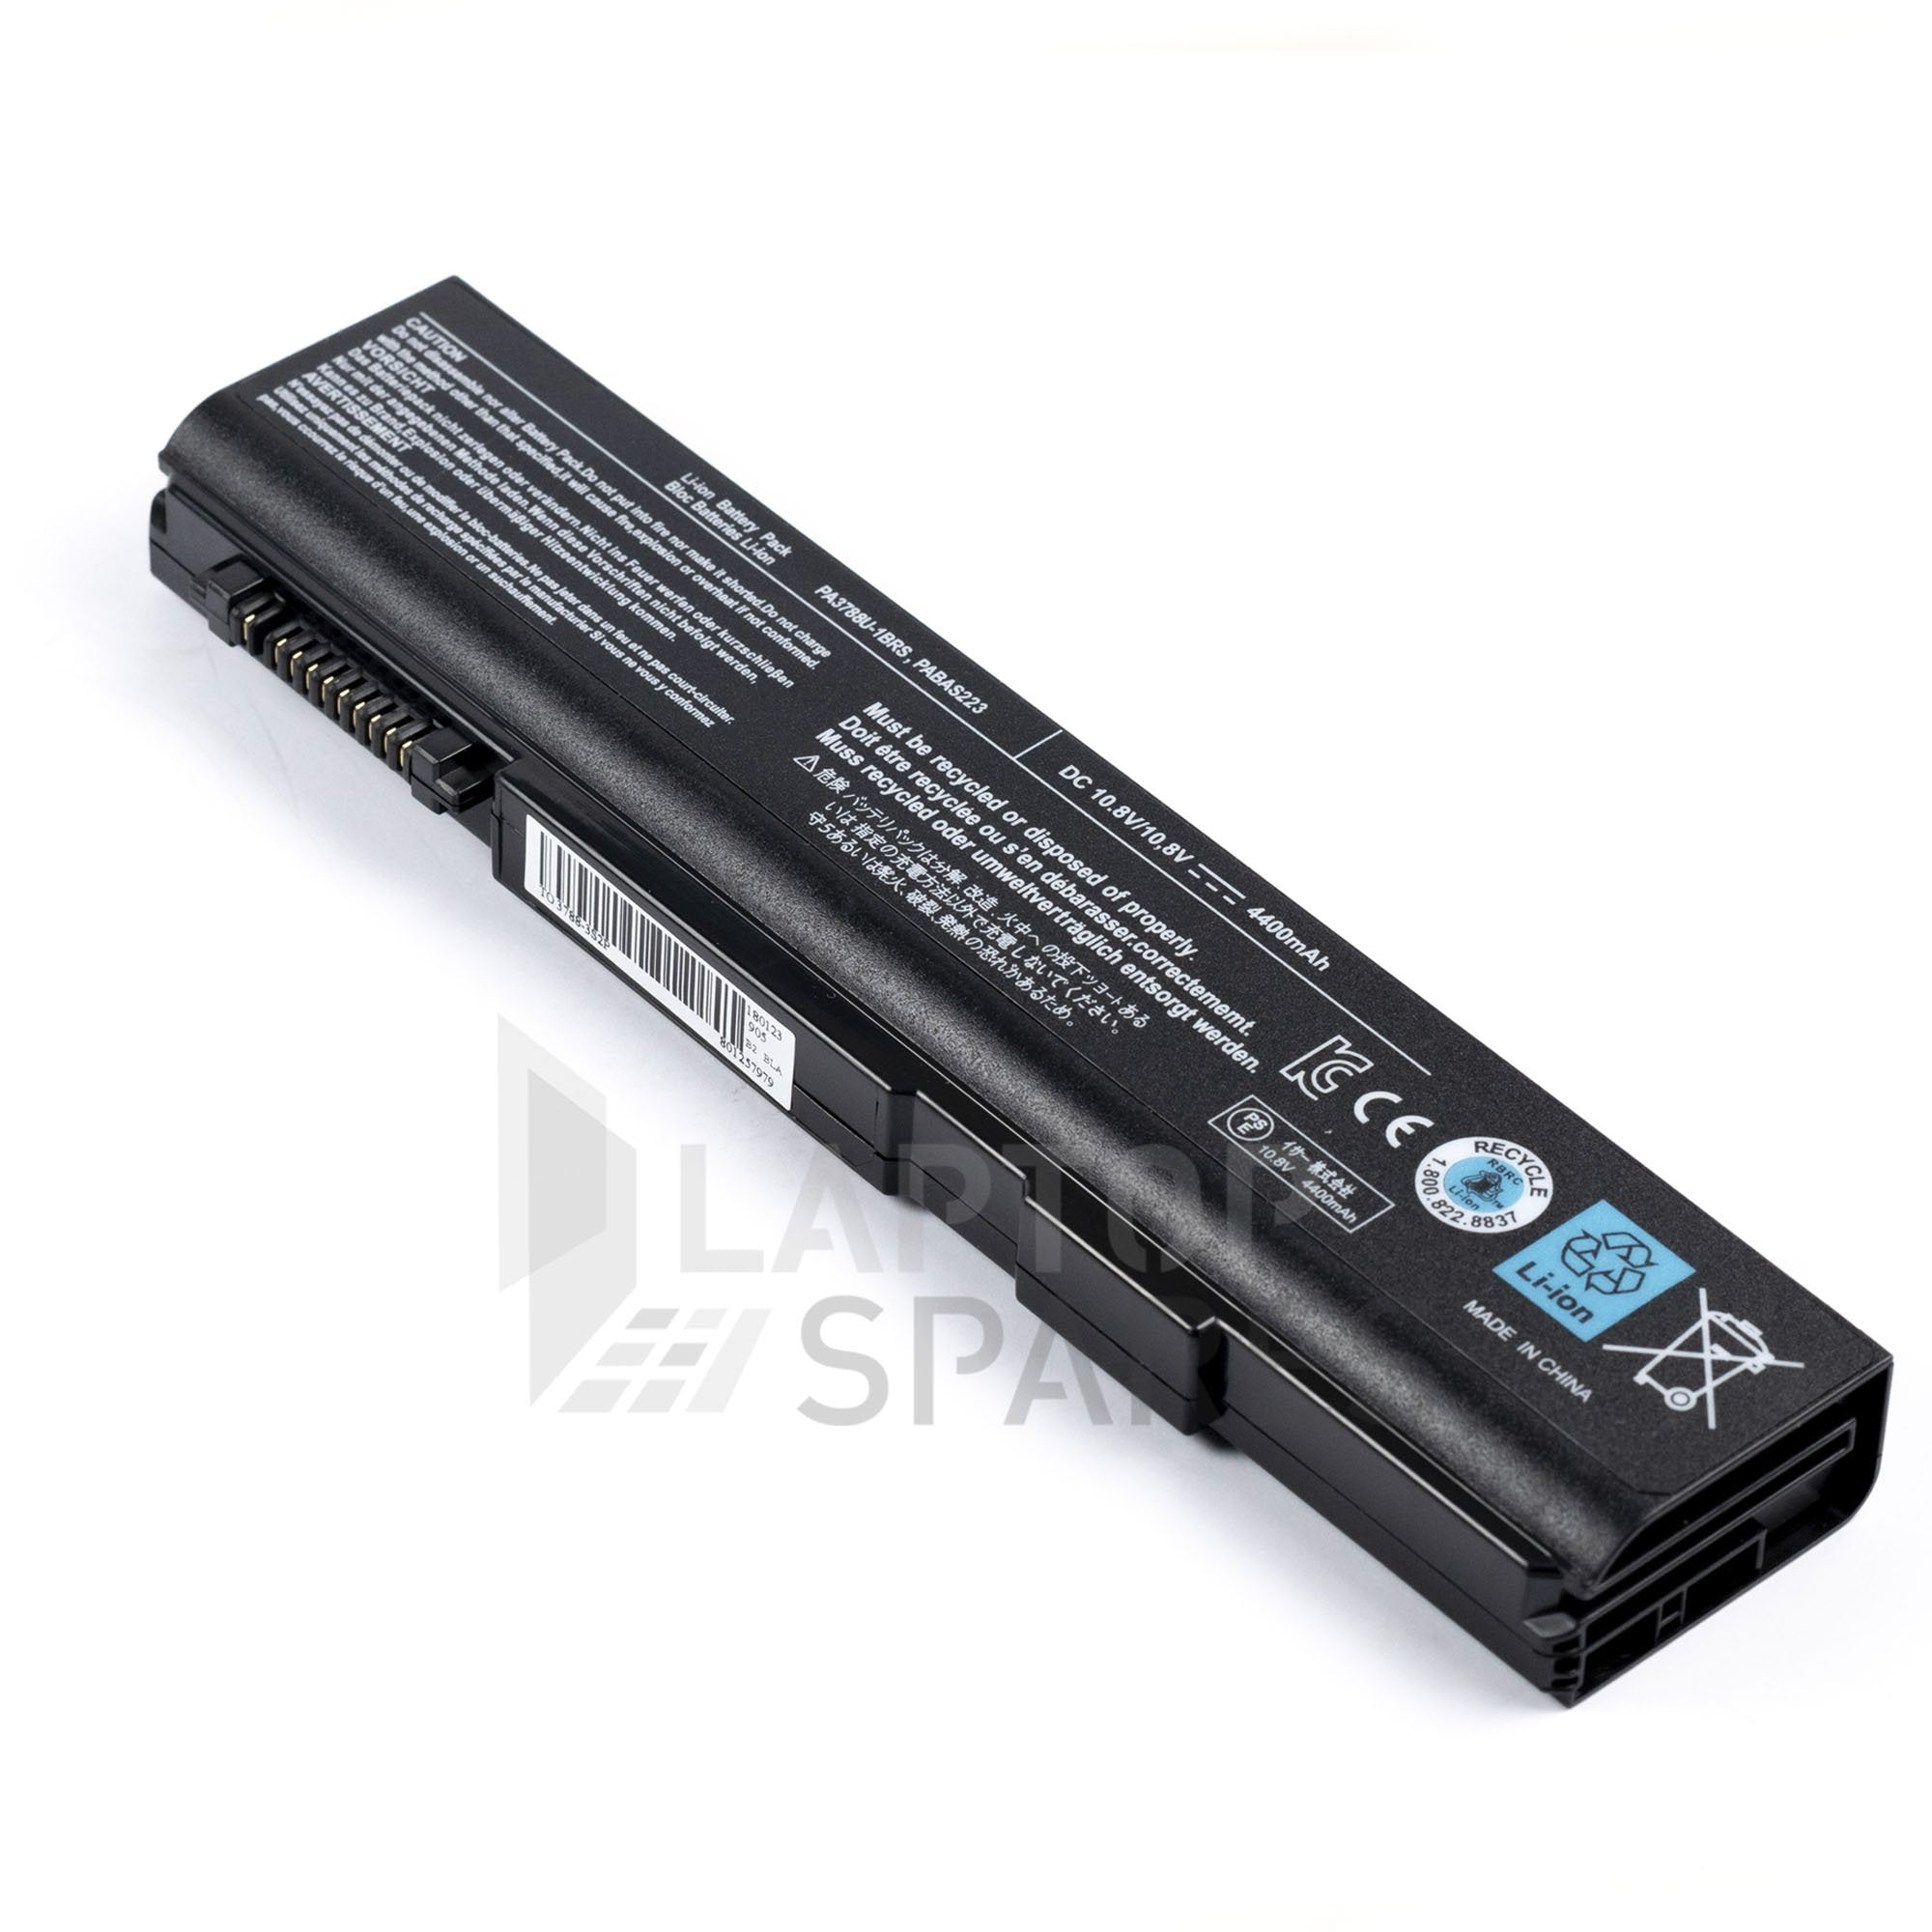 Toshiba Satellite K40 213Y/HDX 226Y/HD 226Y/HDX 4400mAh 6 Cell Battery